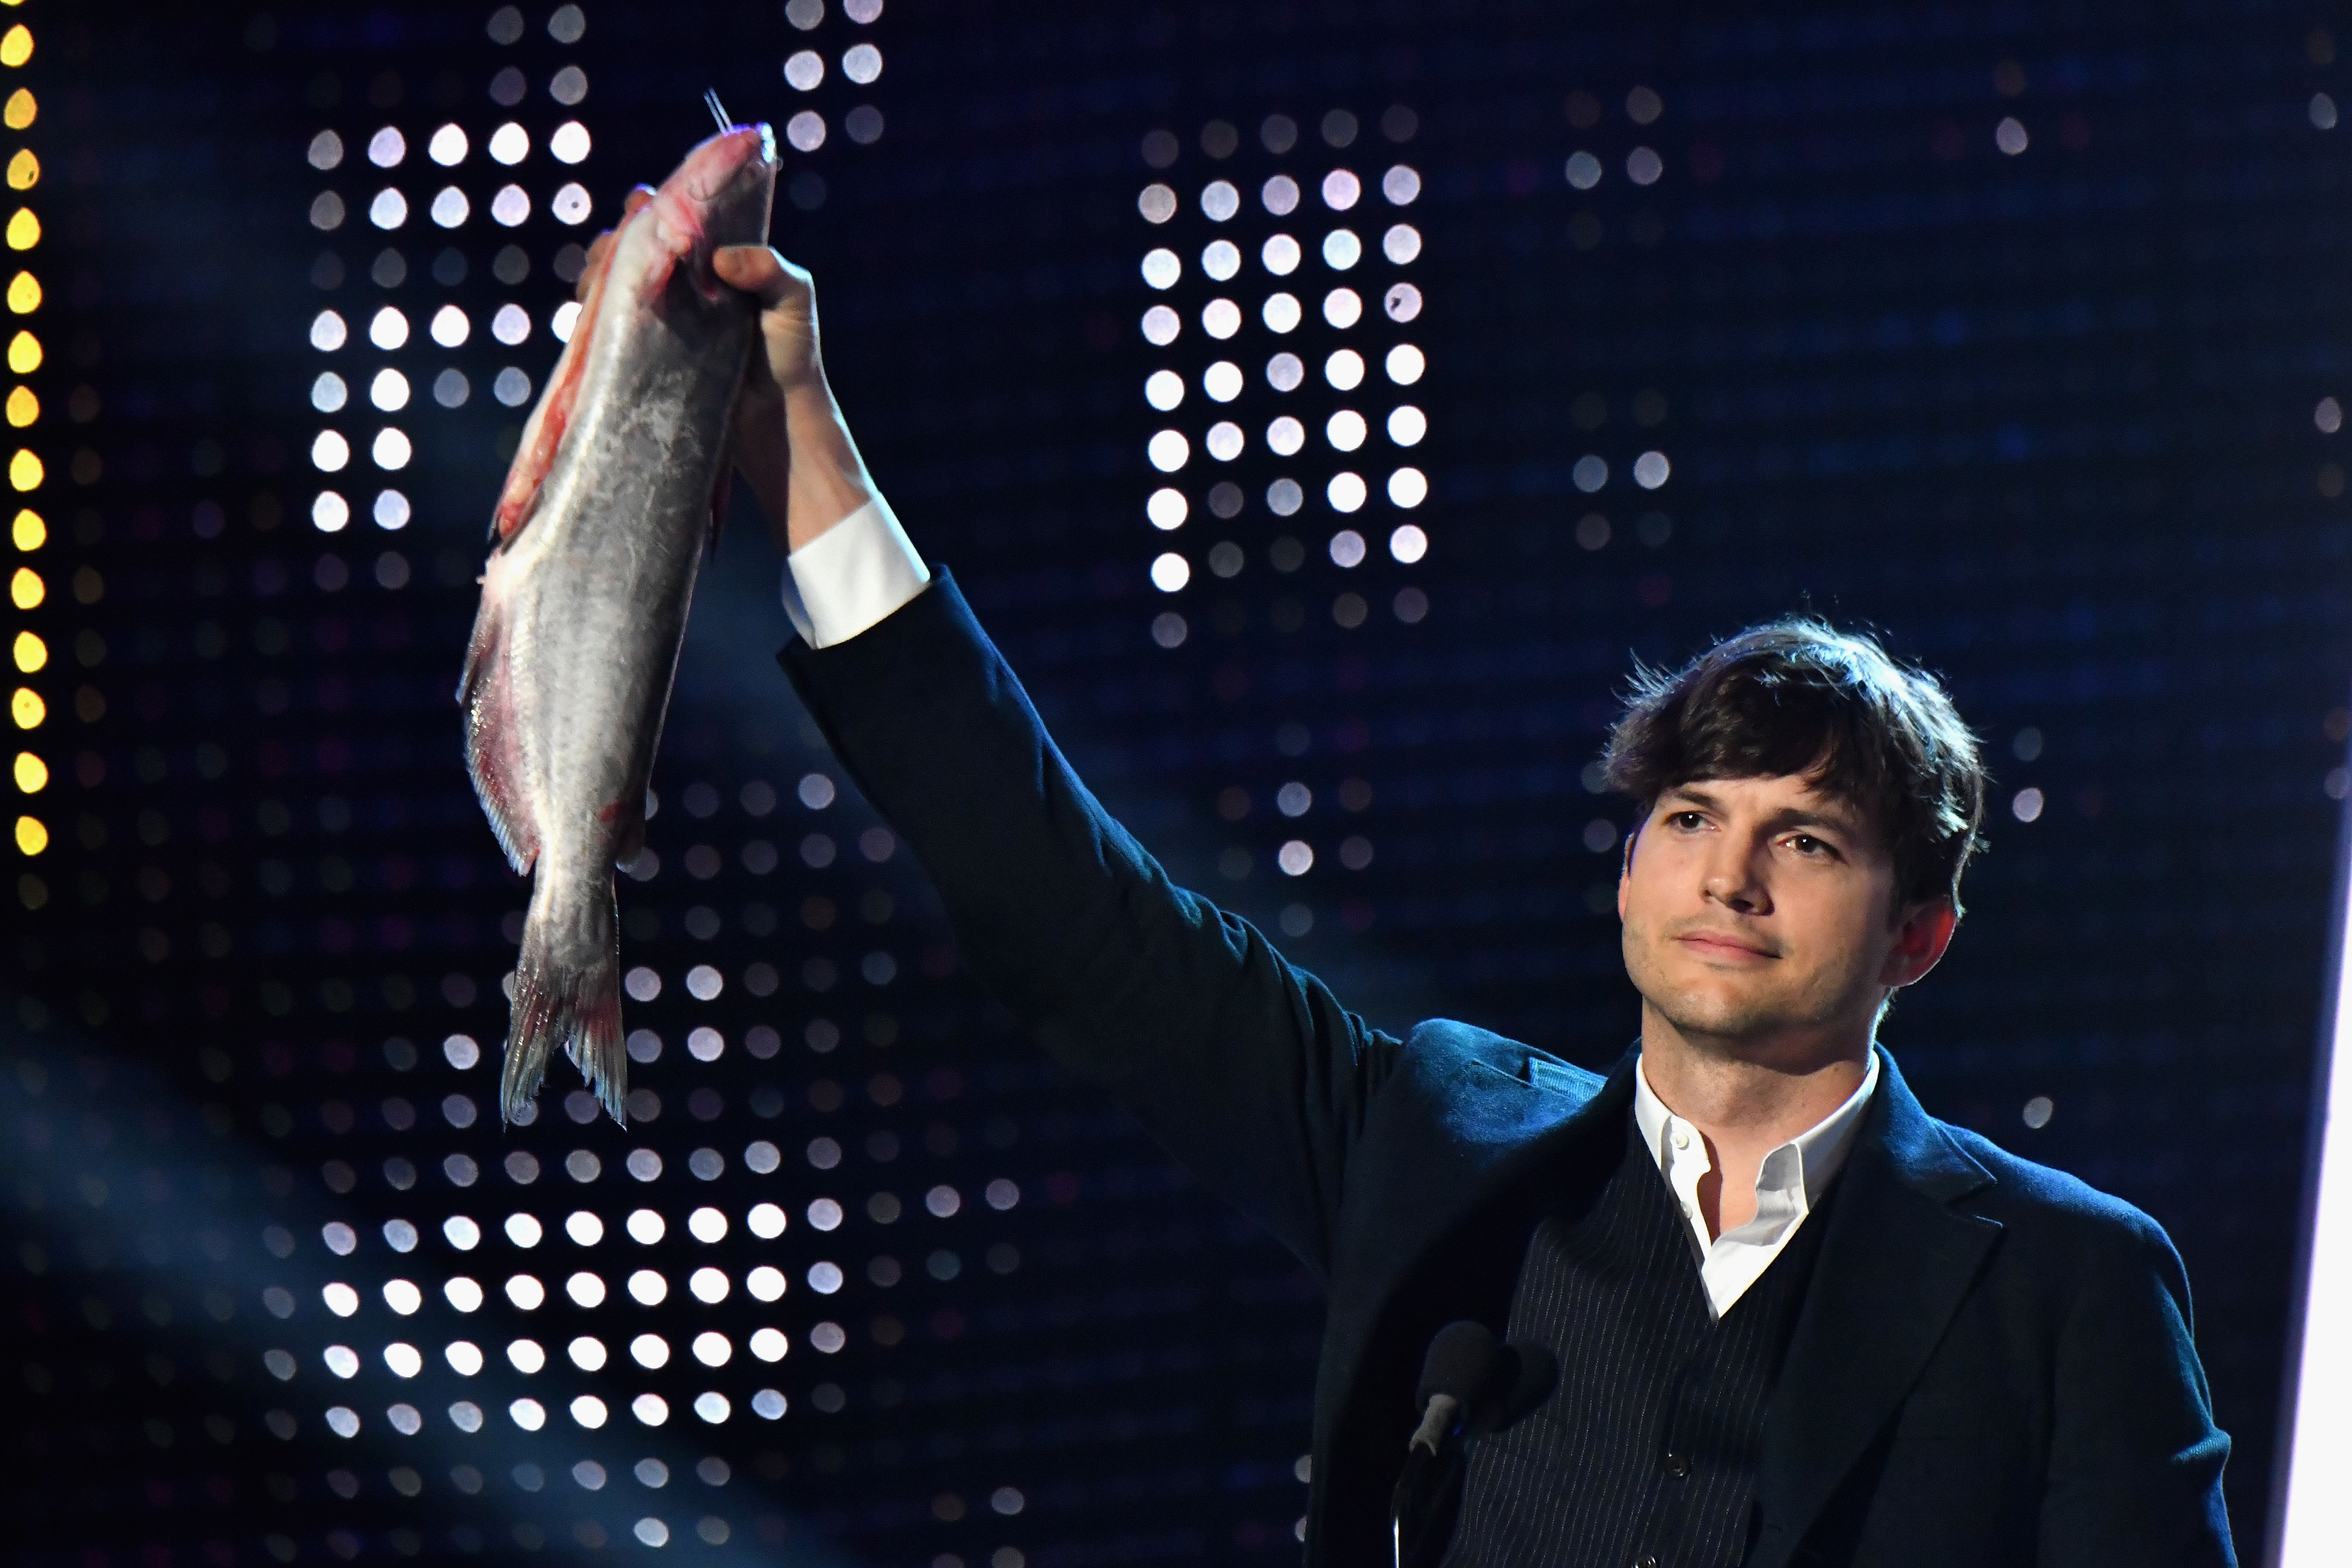 NASHVILLE, TN - JUNE 07: Ashton Kutcher raises a catfish in honor of the Nashville Predators Stanley Cup run during the 2017 CMT Music awards at the Music City Center on June 7, 2017 in Nashville, Tennessee.  (Photo by Jeff Kravitz/FilmMagic)